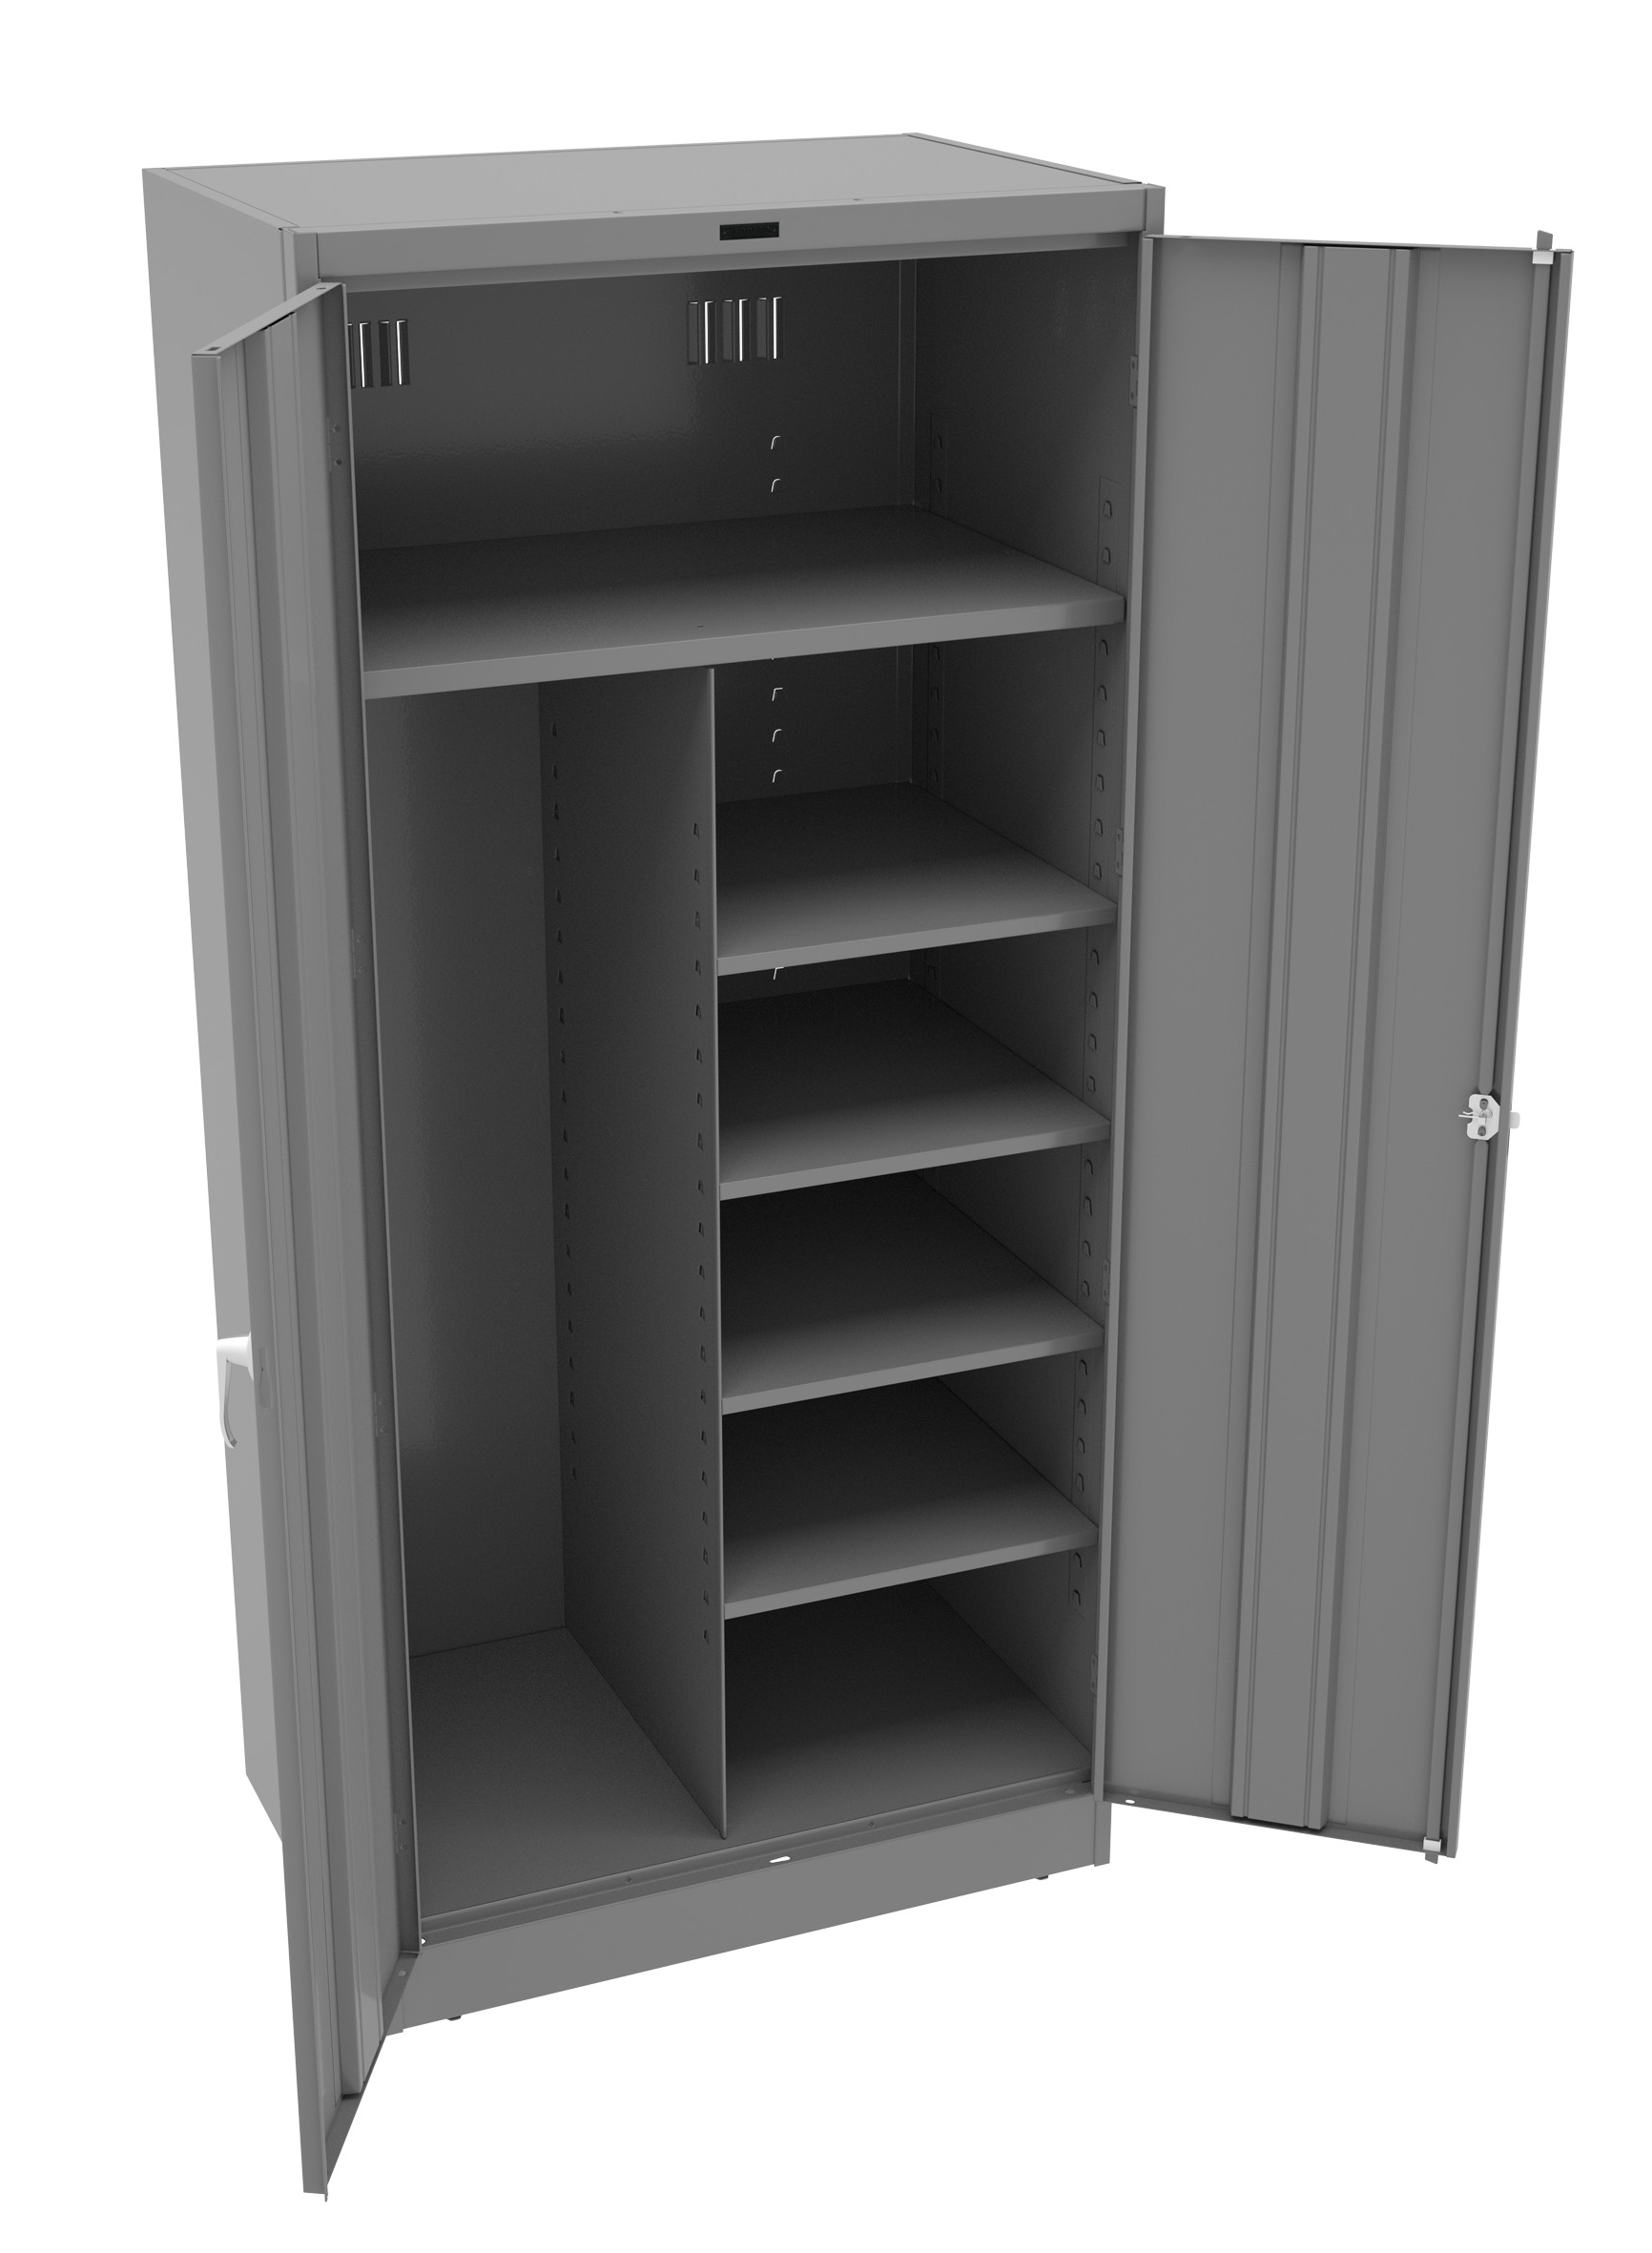 Tennsco - Storage Made Easy - Deluxe Combination Cabinet (Welded)